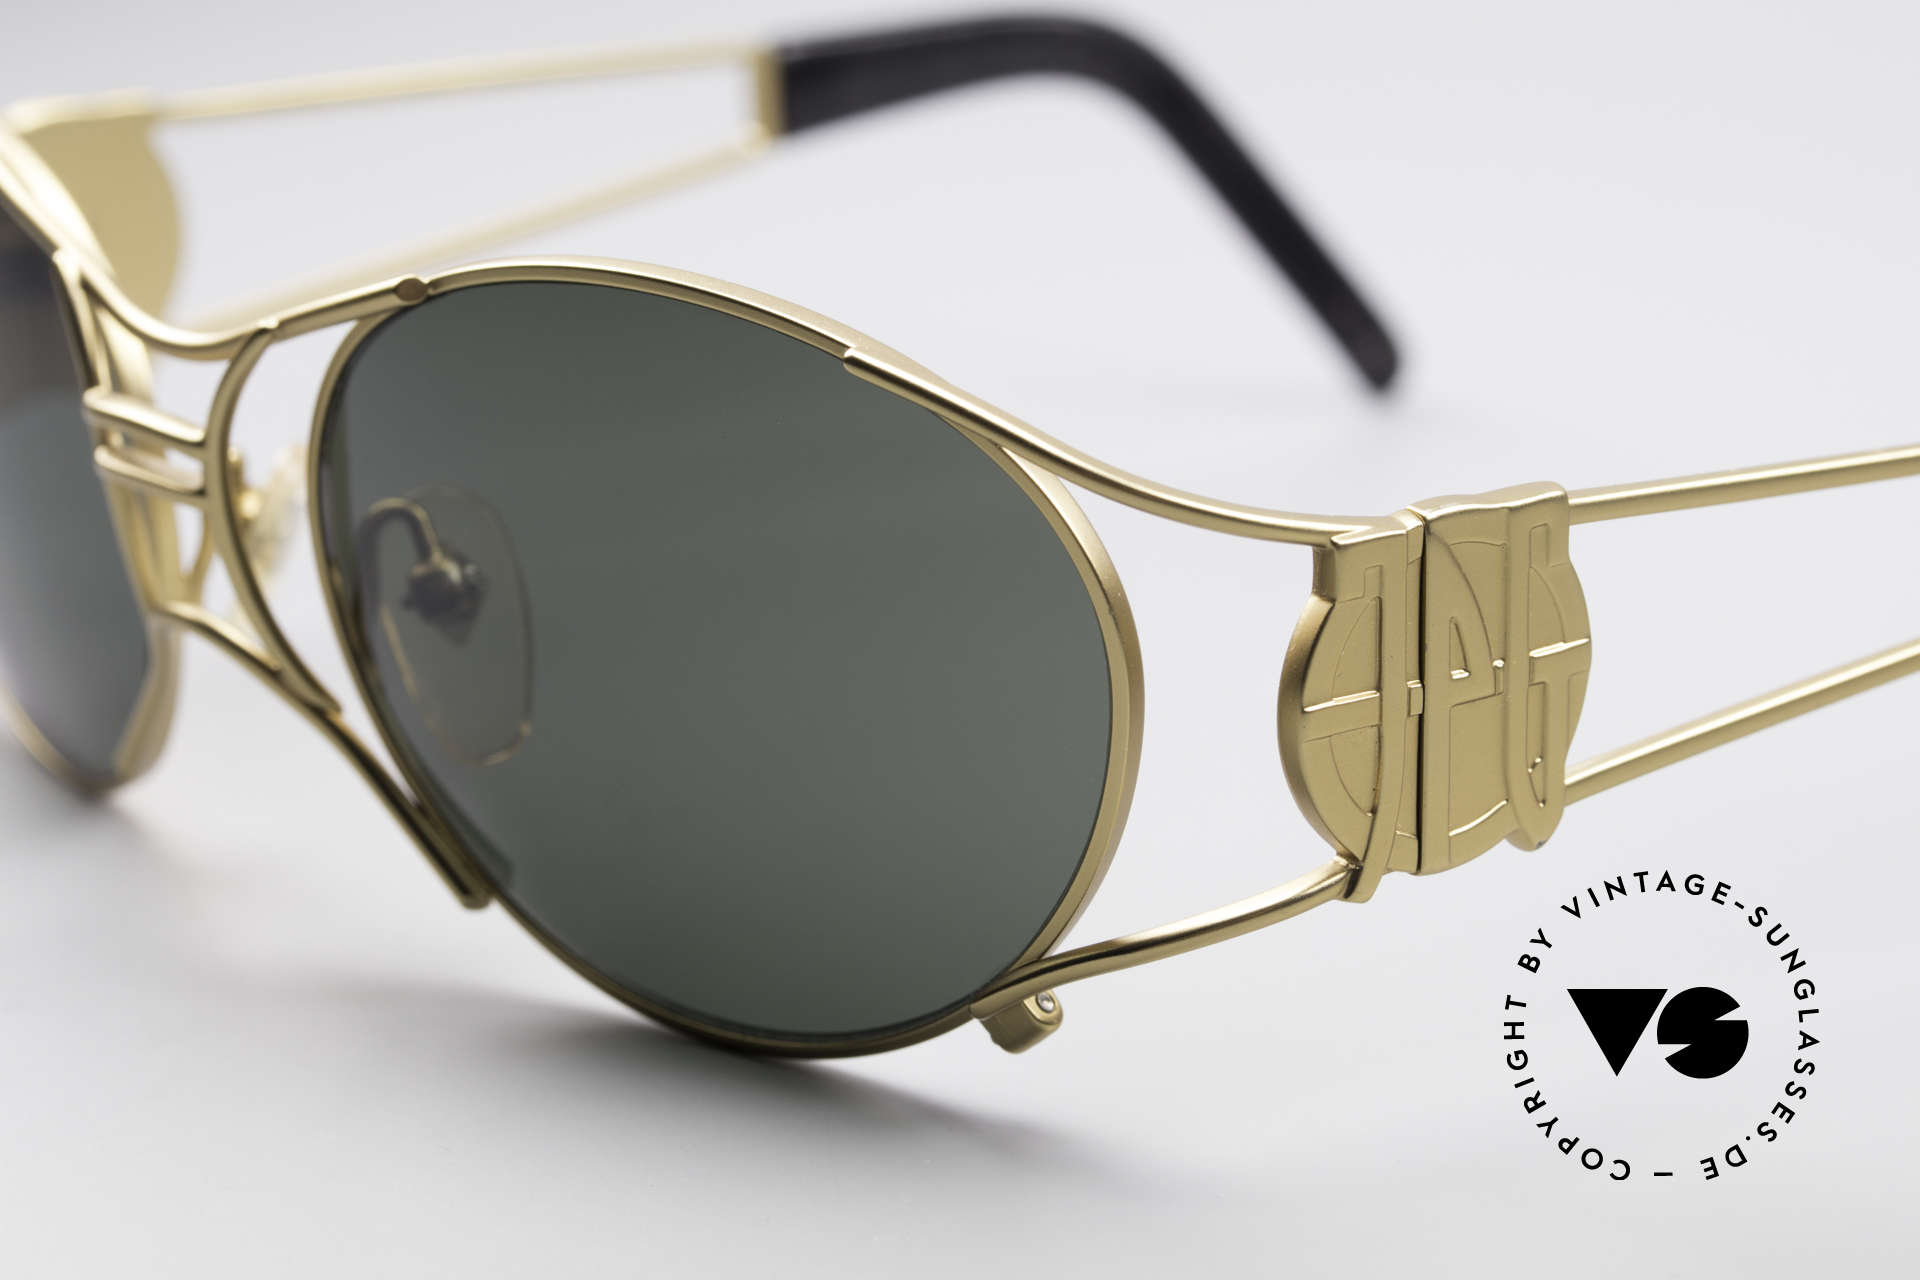 Jean Paul Gaultier 58-6101 90's Steampunk Sunglasses, top-notch craftsmanship, made in JAPAN (100% UV), Made for Men and Women